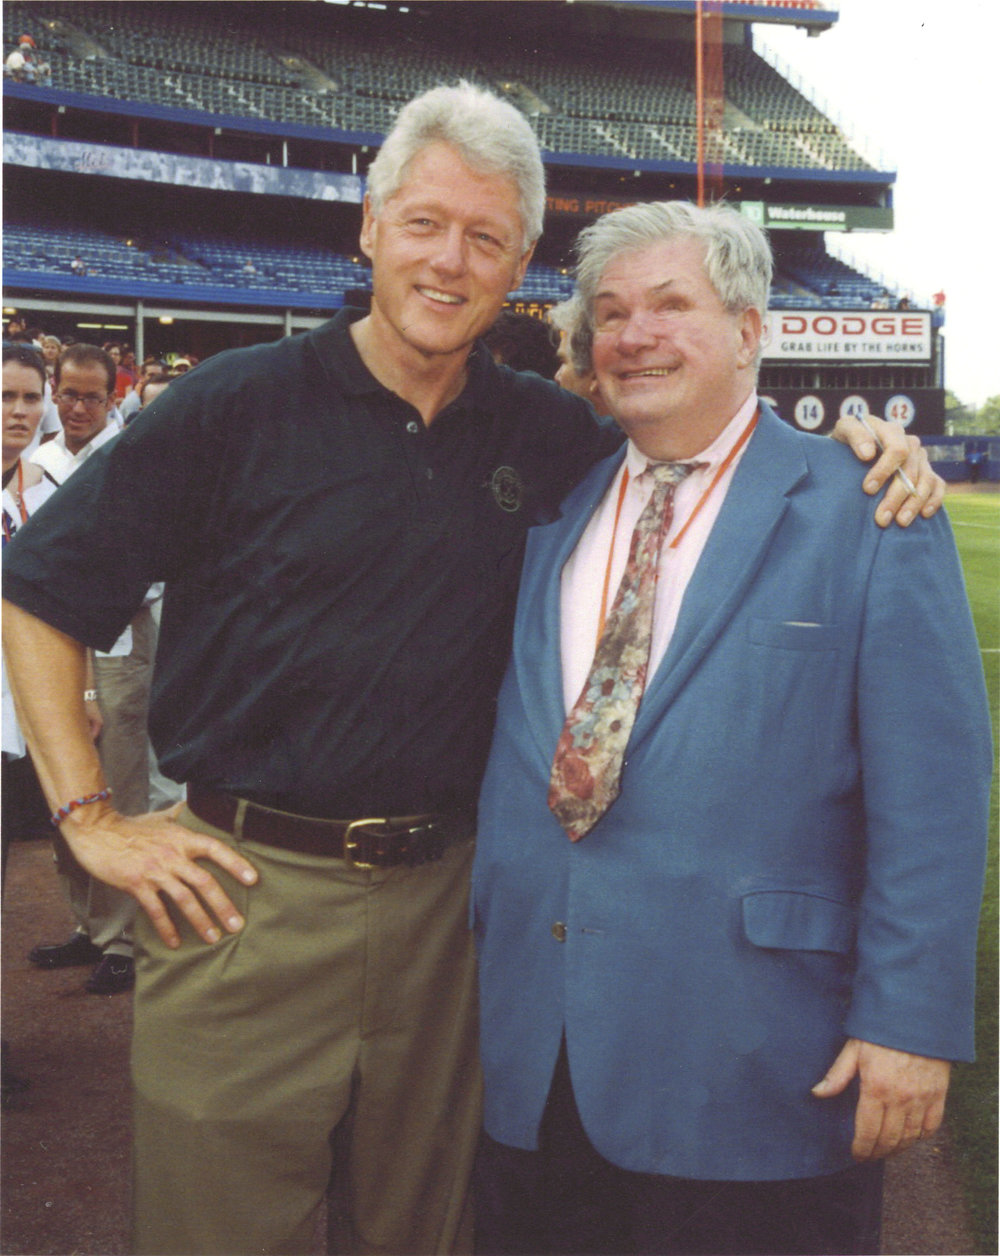 Ed and President Clinton.jpg